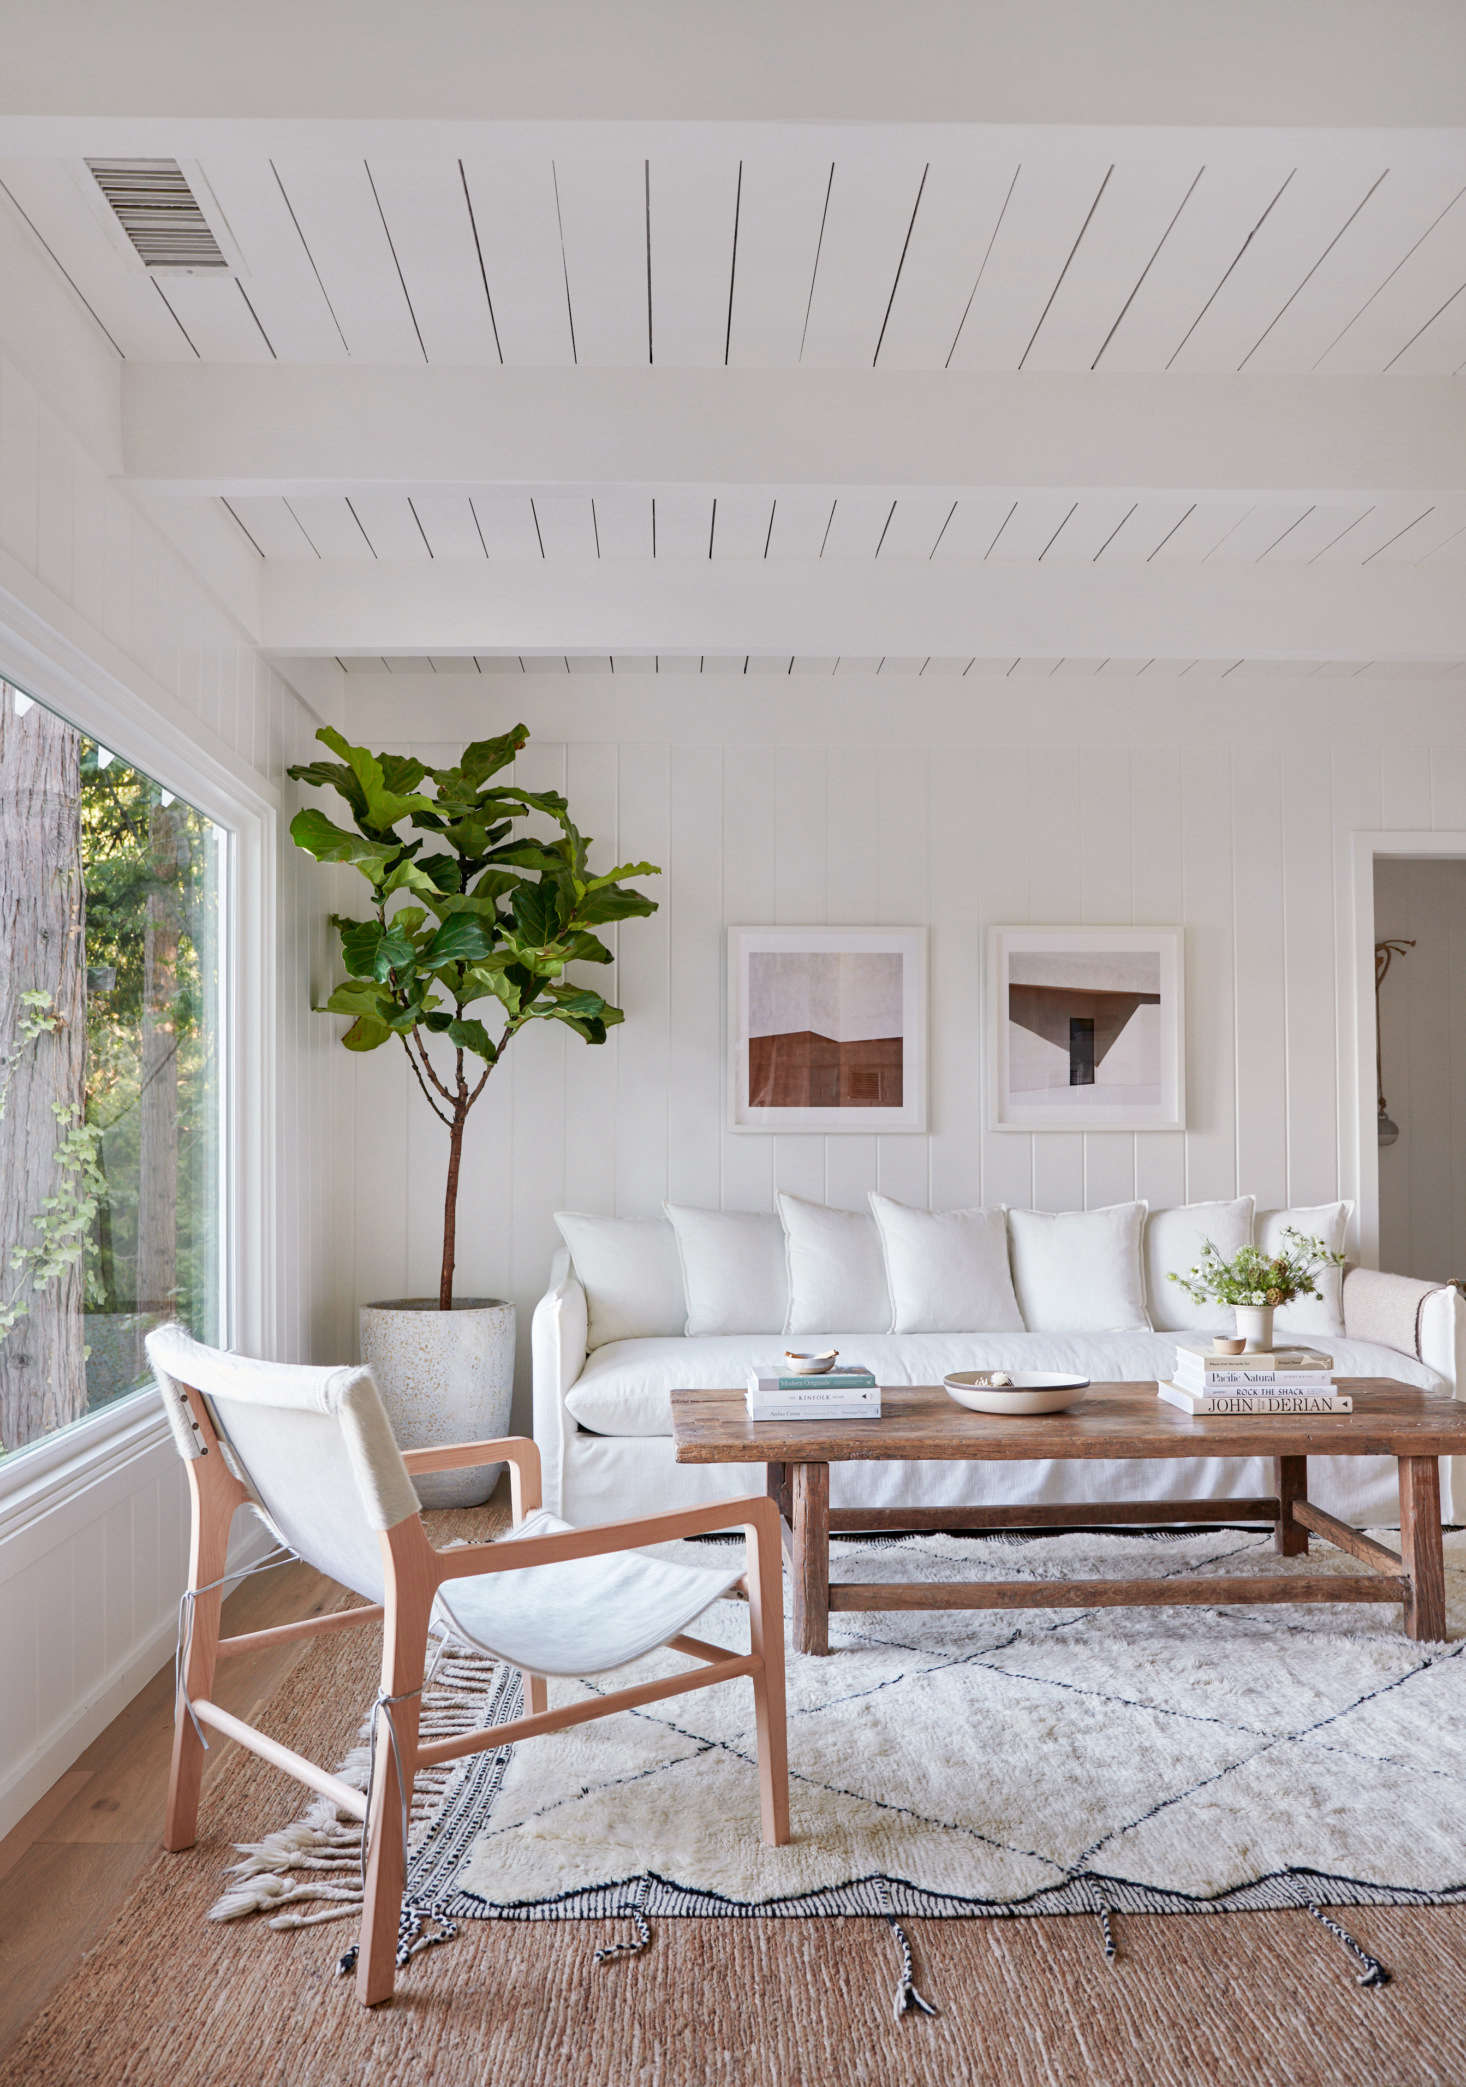 In the living area, theDune sofa and Hayes chairs are both from Maiden Home.